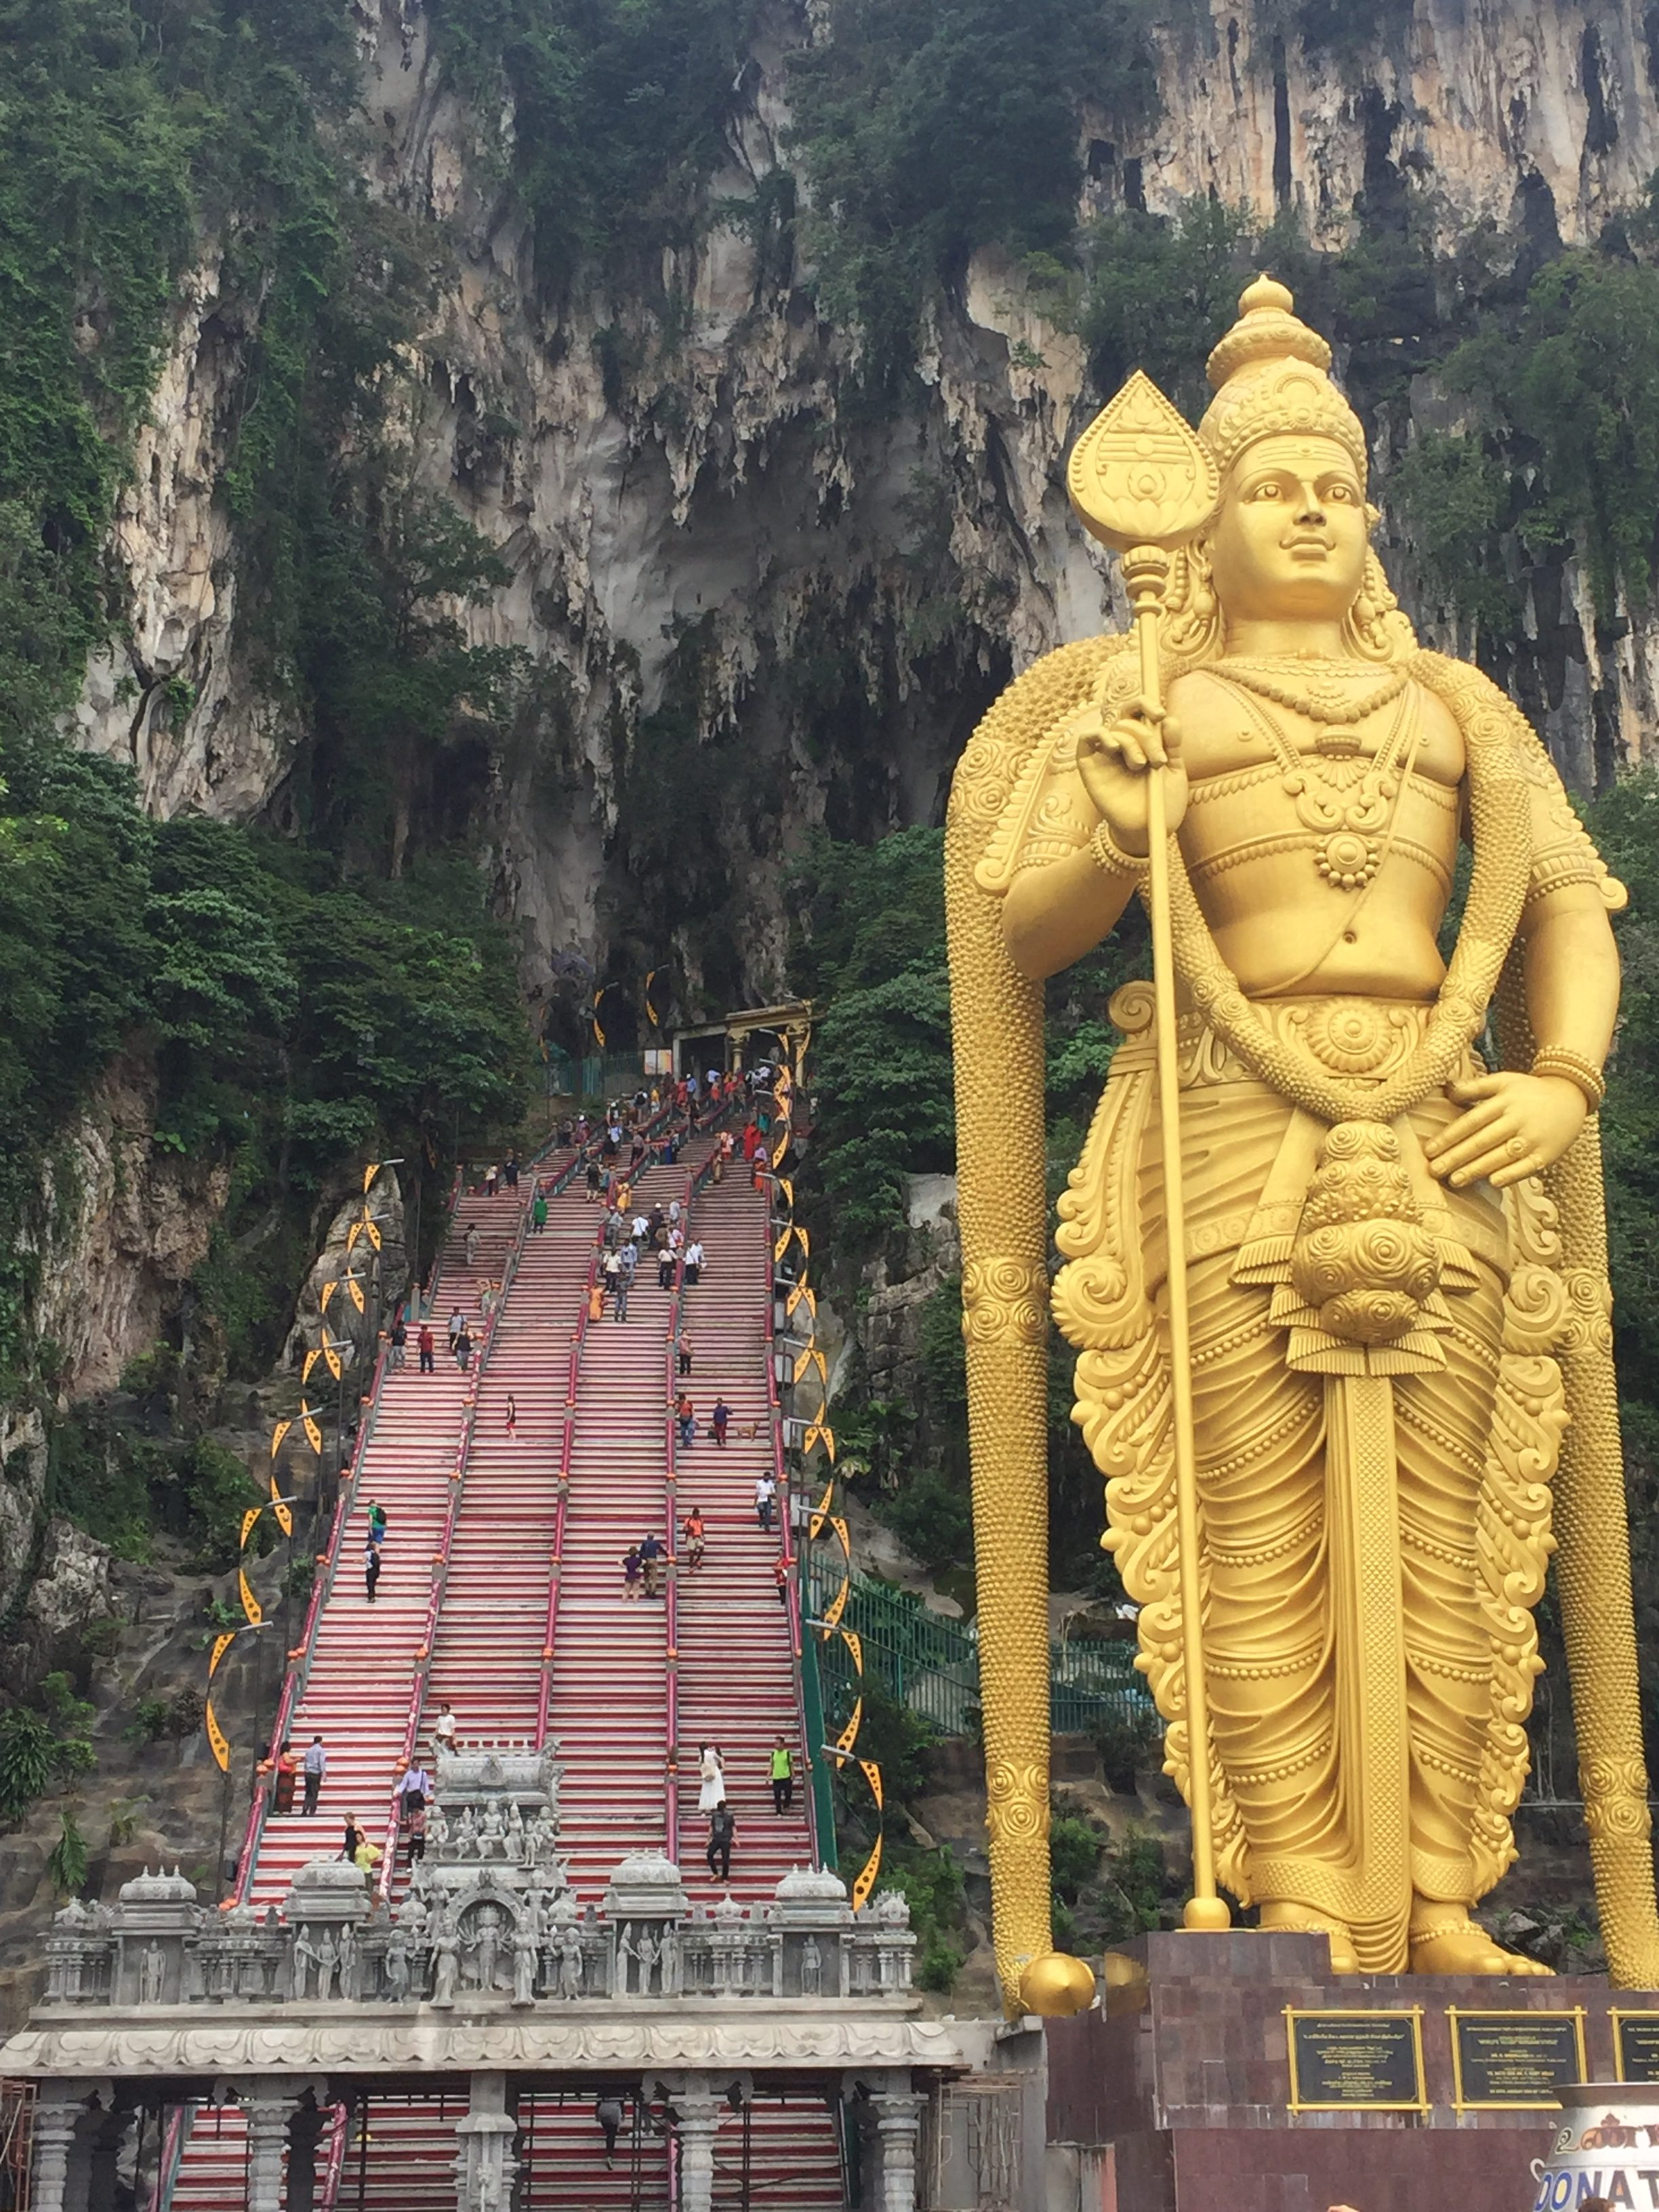 Batu Caves from the front